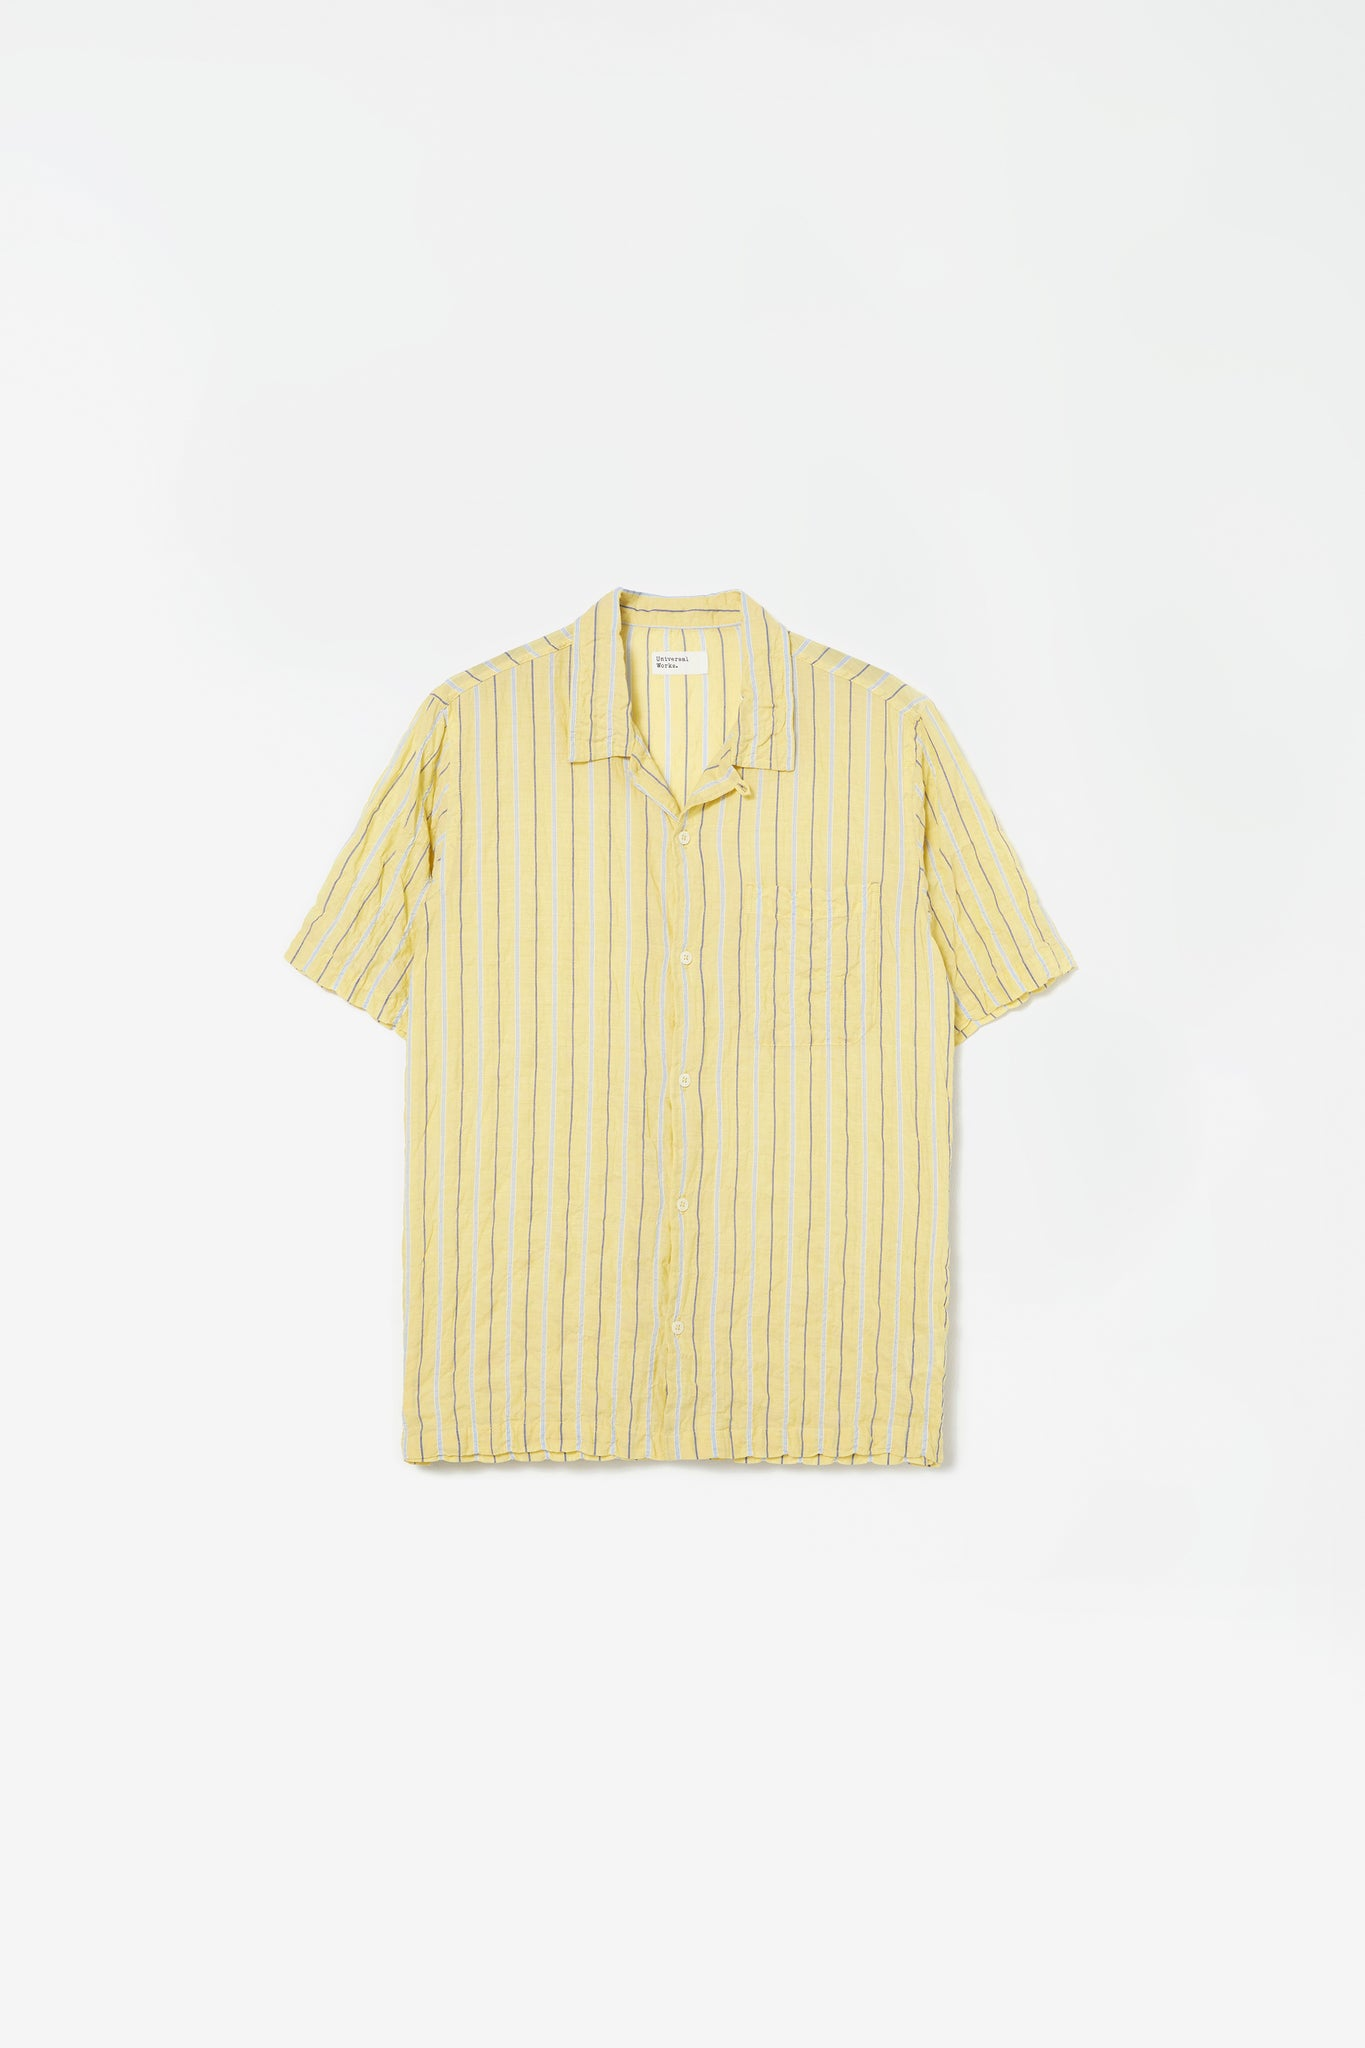 Road shirt ranch stripe yellow